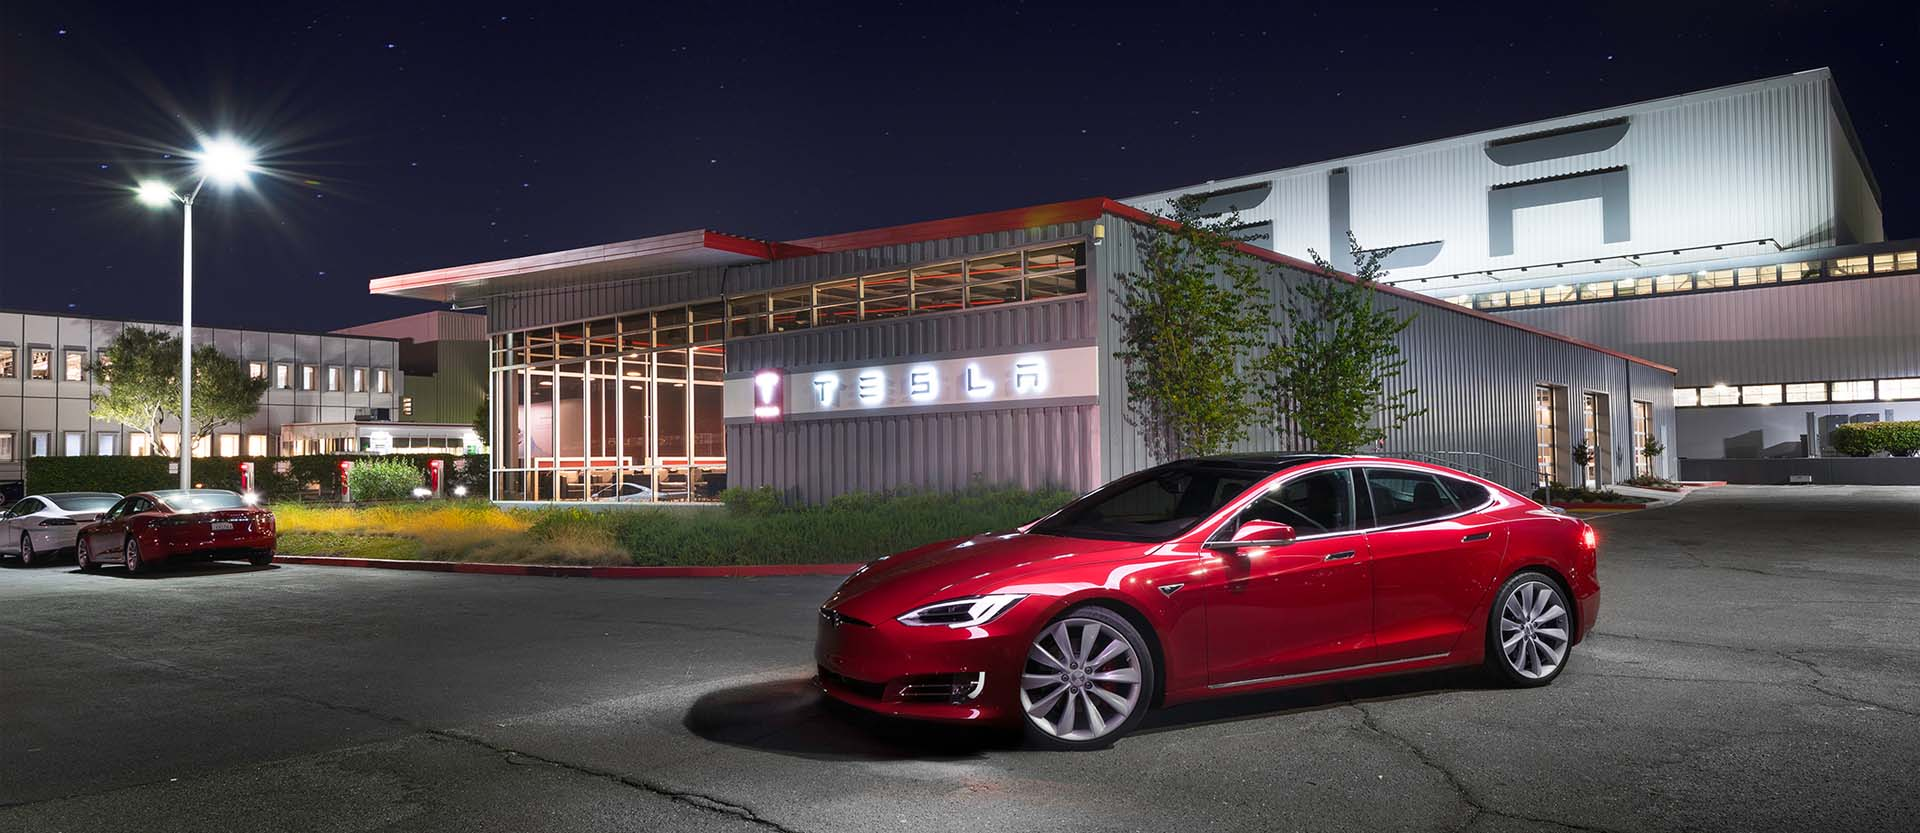 tesla announces model s 100d with 335 mile range. Black Bedroom Furniture Sets. Home Design Ideas